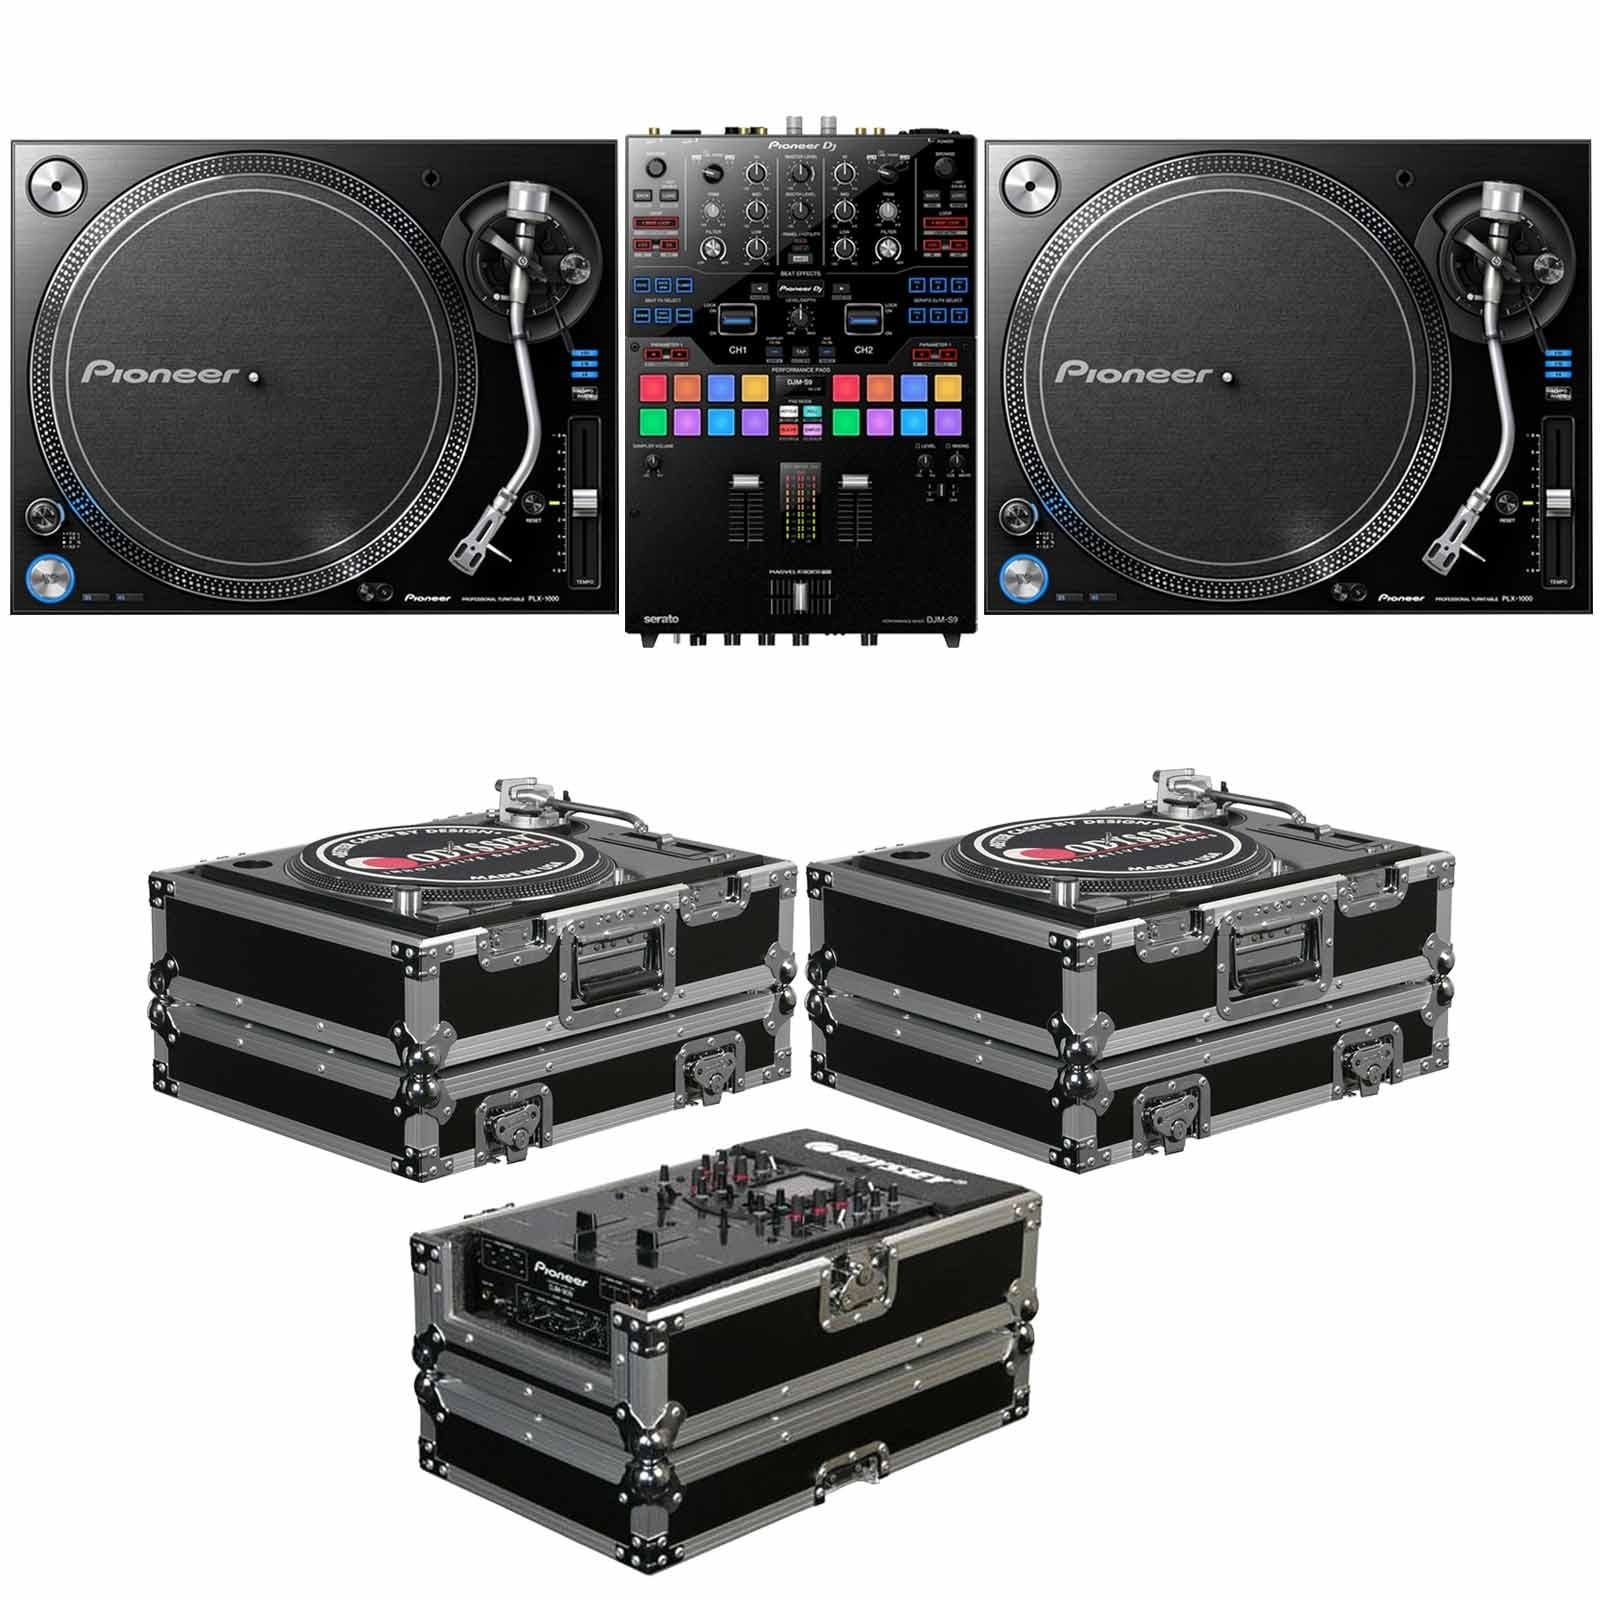 pioneer-djm-s9-2-channel-serato-battle-mixer-plx-1000-turntables-professional-dj-package-a92.jpg